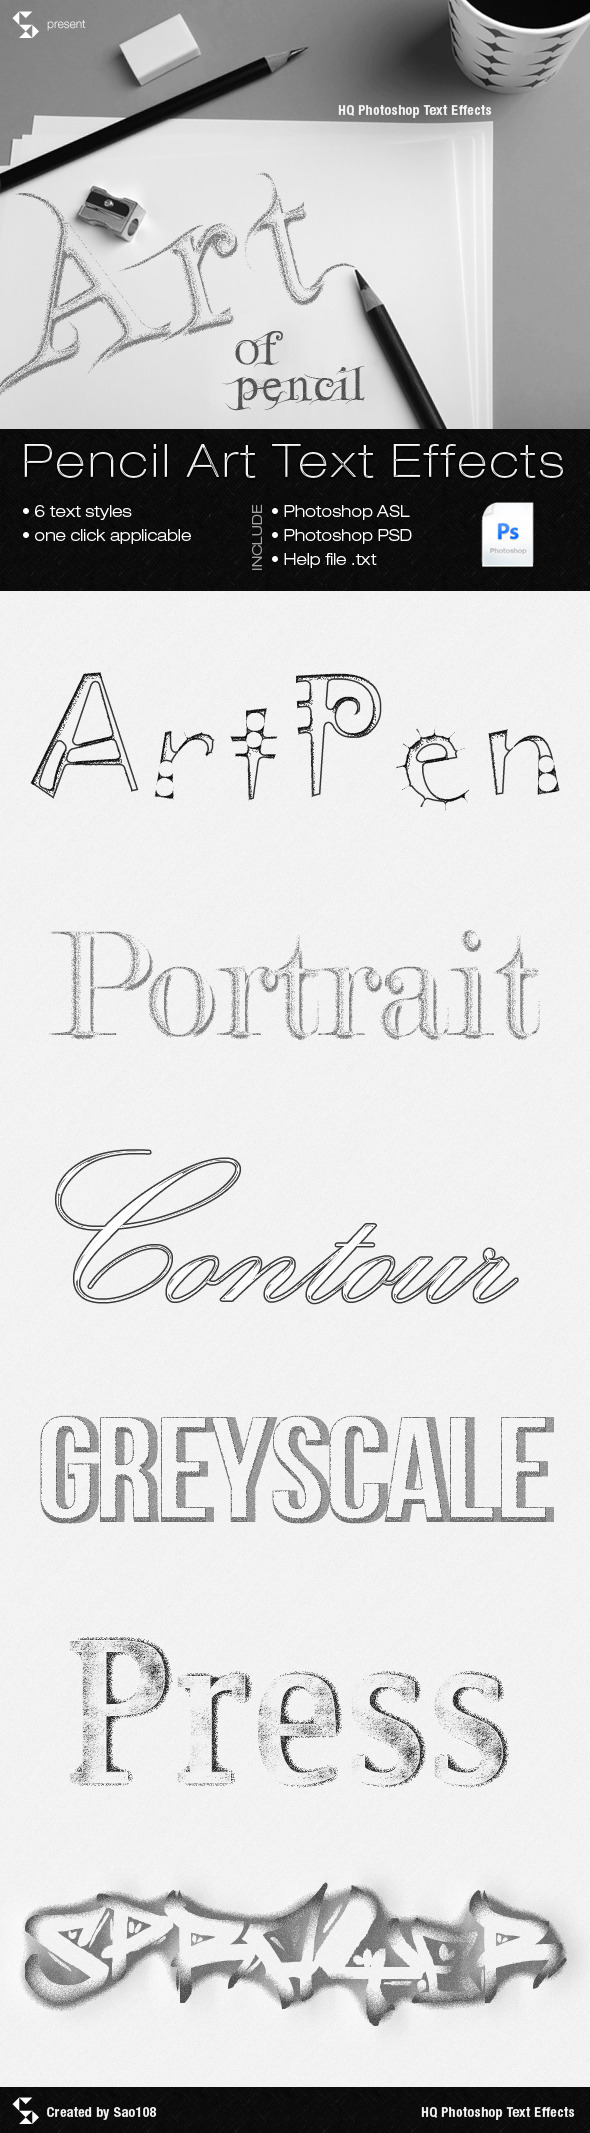 Pencil Art Text Effects